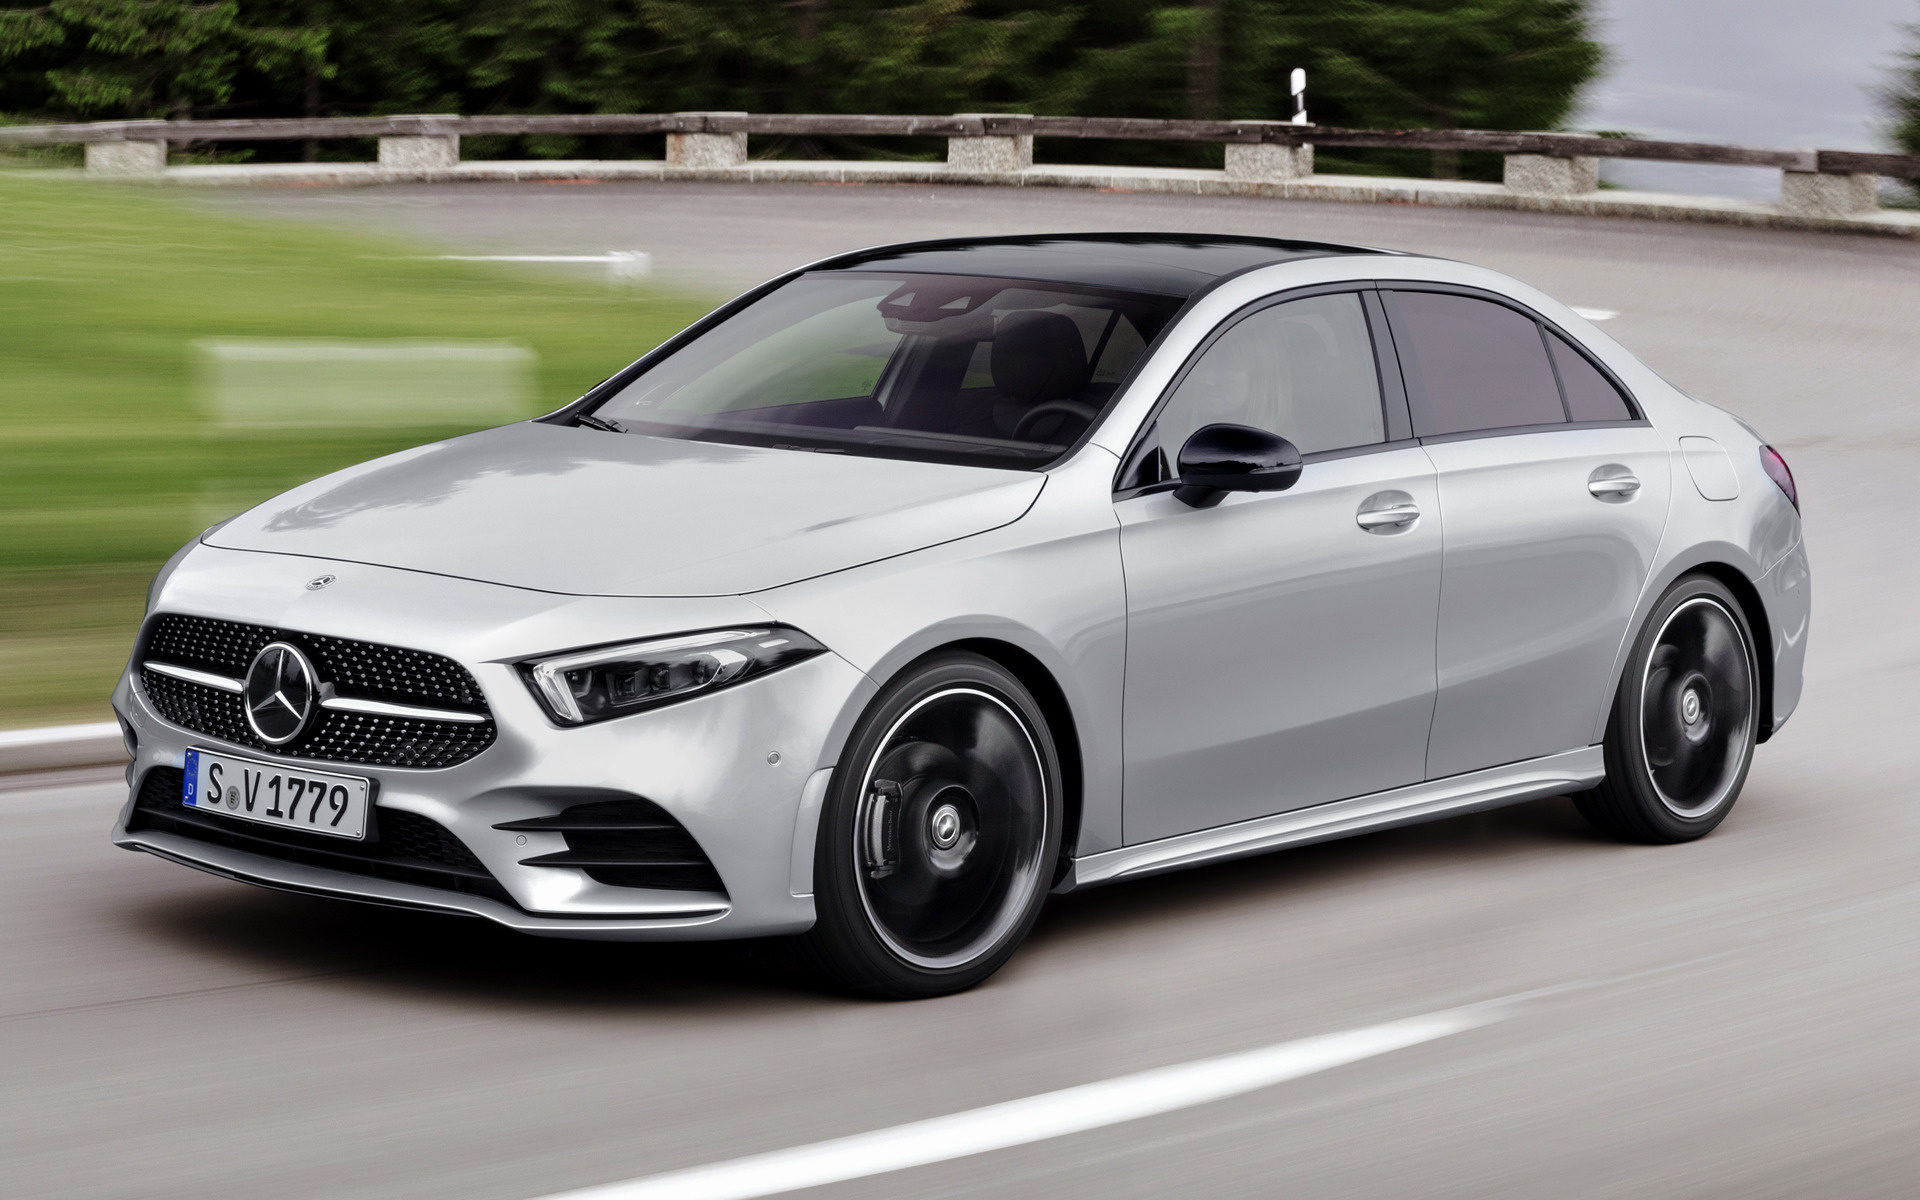 04.10.2021· find a 2021 hyundai veloster for sale near you » 2020 vs. 2018 Mercedes-Benz A-Class Sedan AMG Line - Wallpapers and